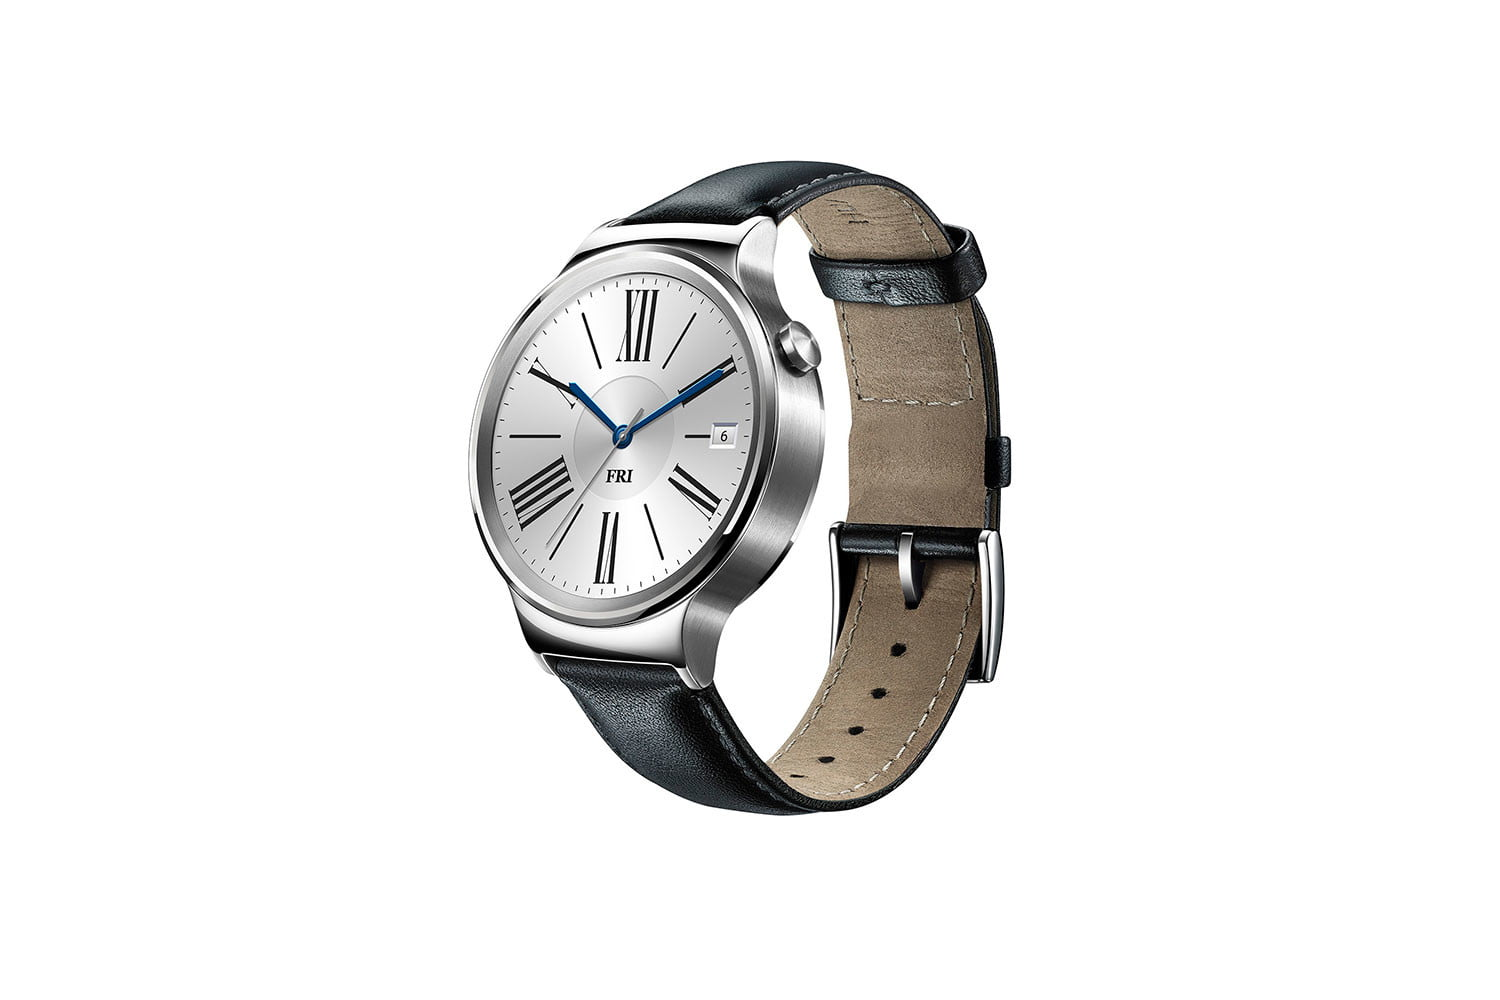 huawei watch news stainless leather left side